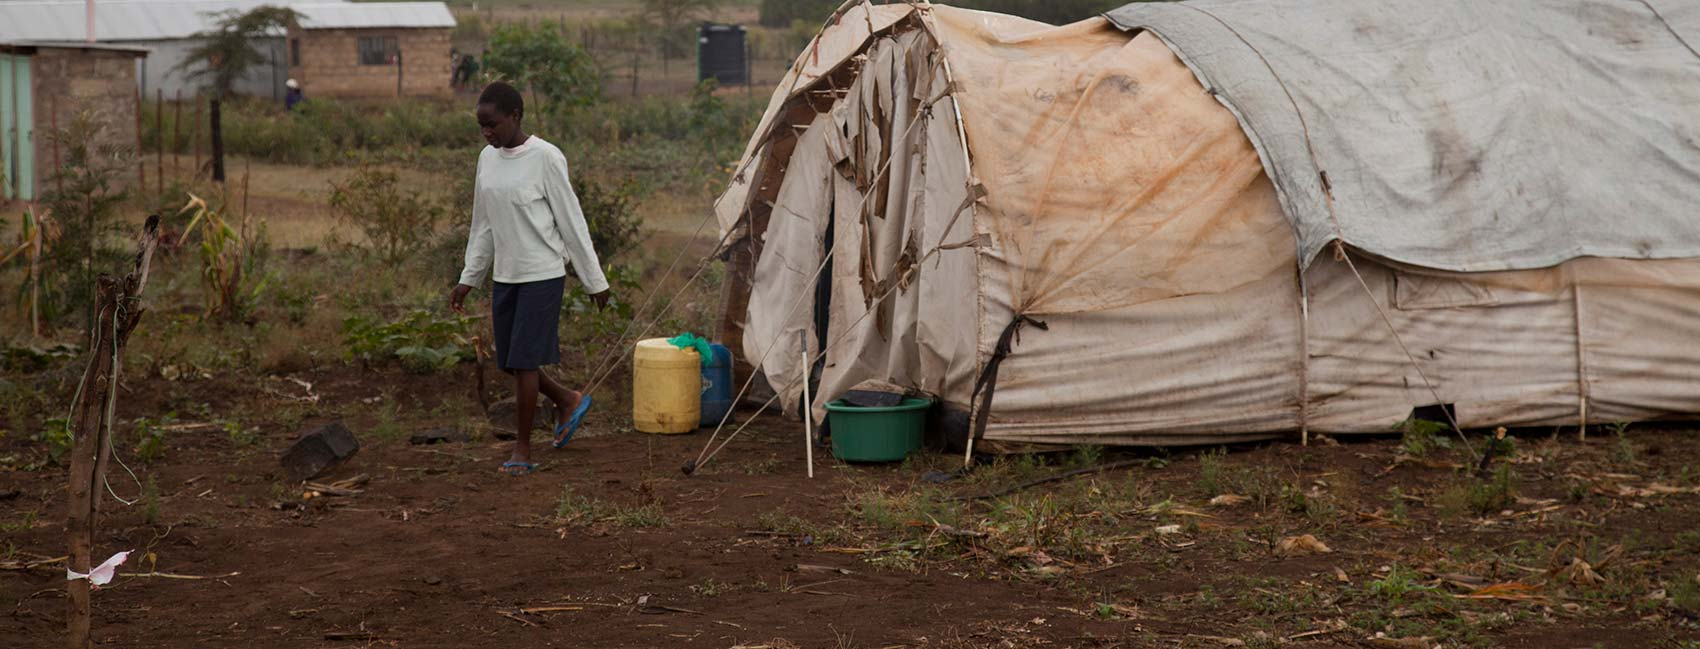 Housing poverty in kenya slums vulnerable communities